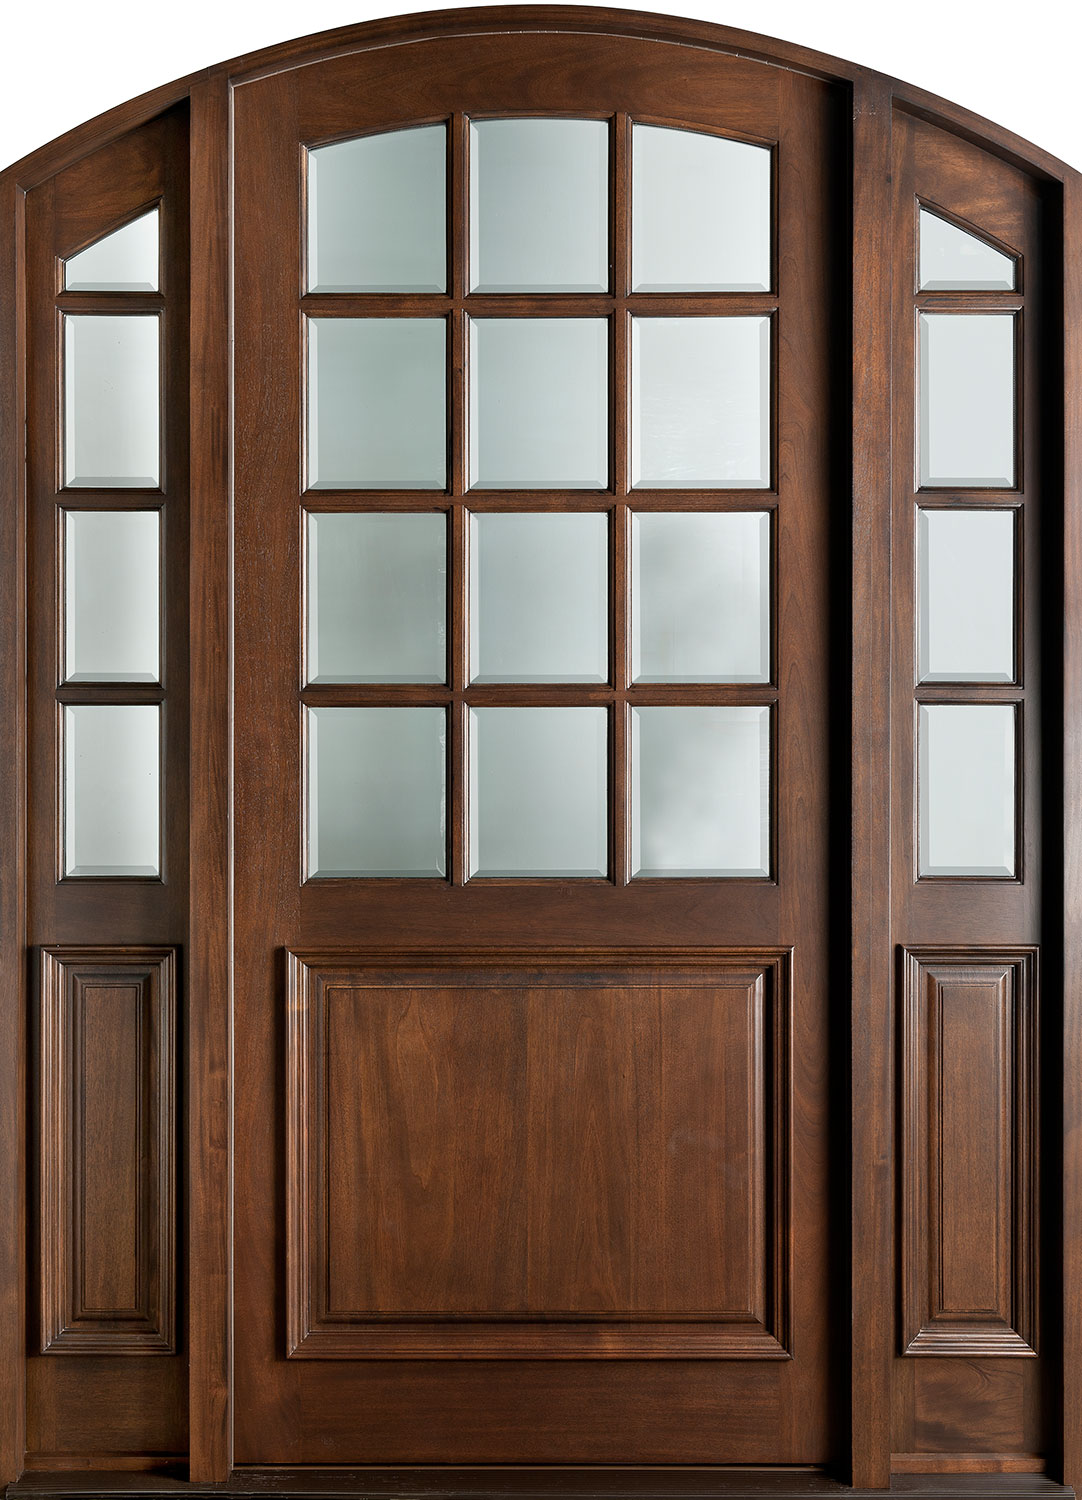 Wood Entry Door - Single with 2 Sidelites